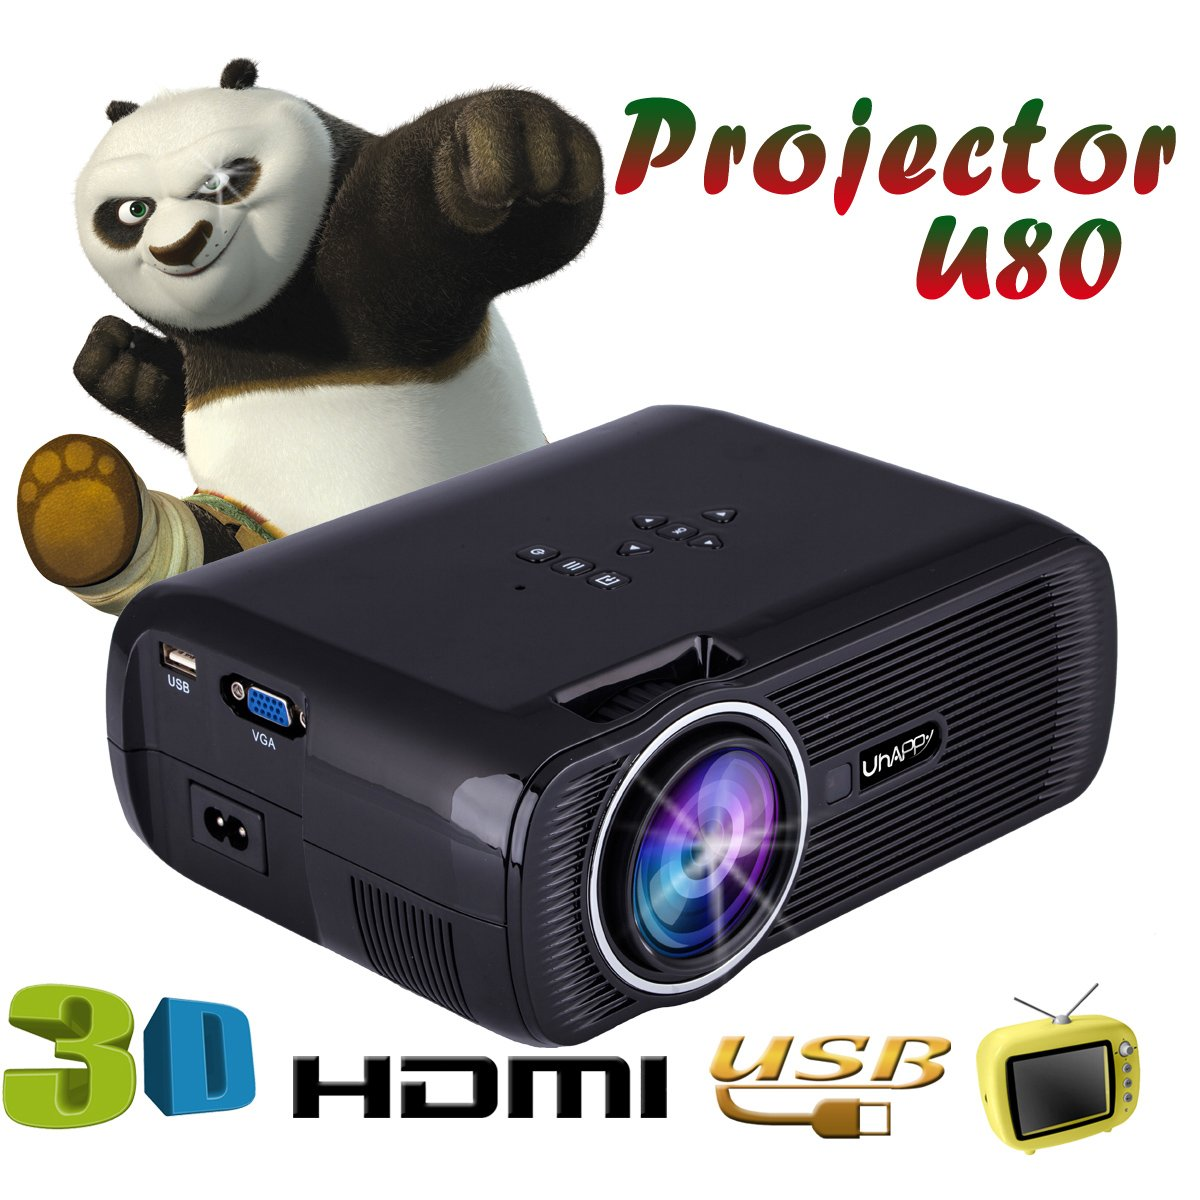 UHAPPY U80 Mini LED HD projector Portable projector (EN) - Black by U Happy (Image #4)